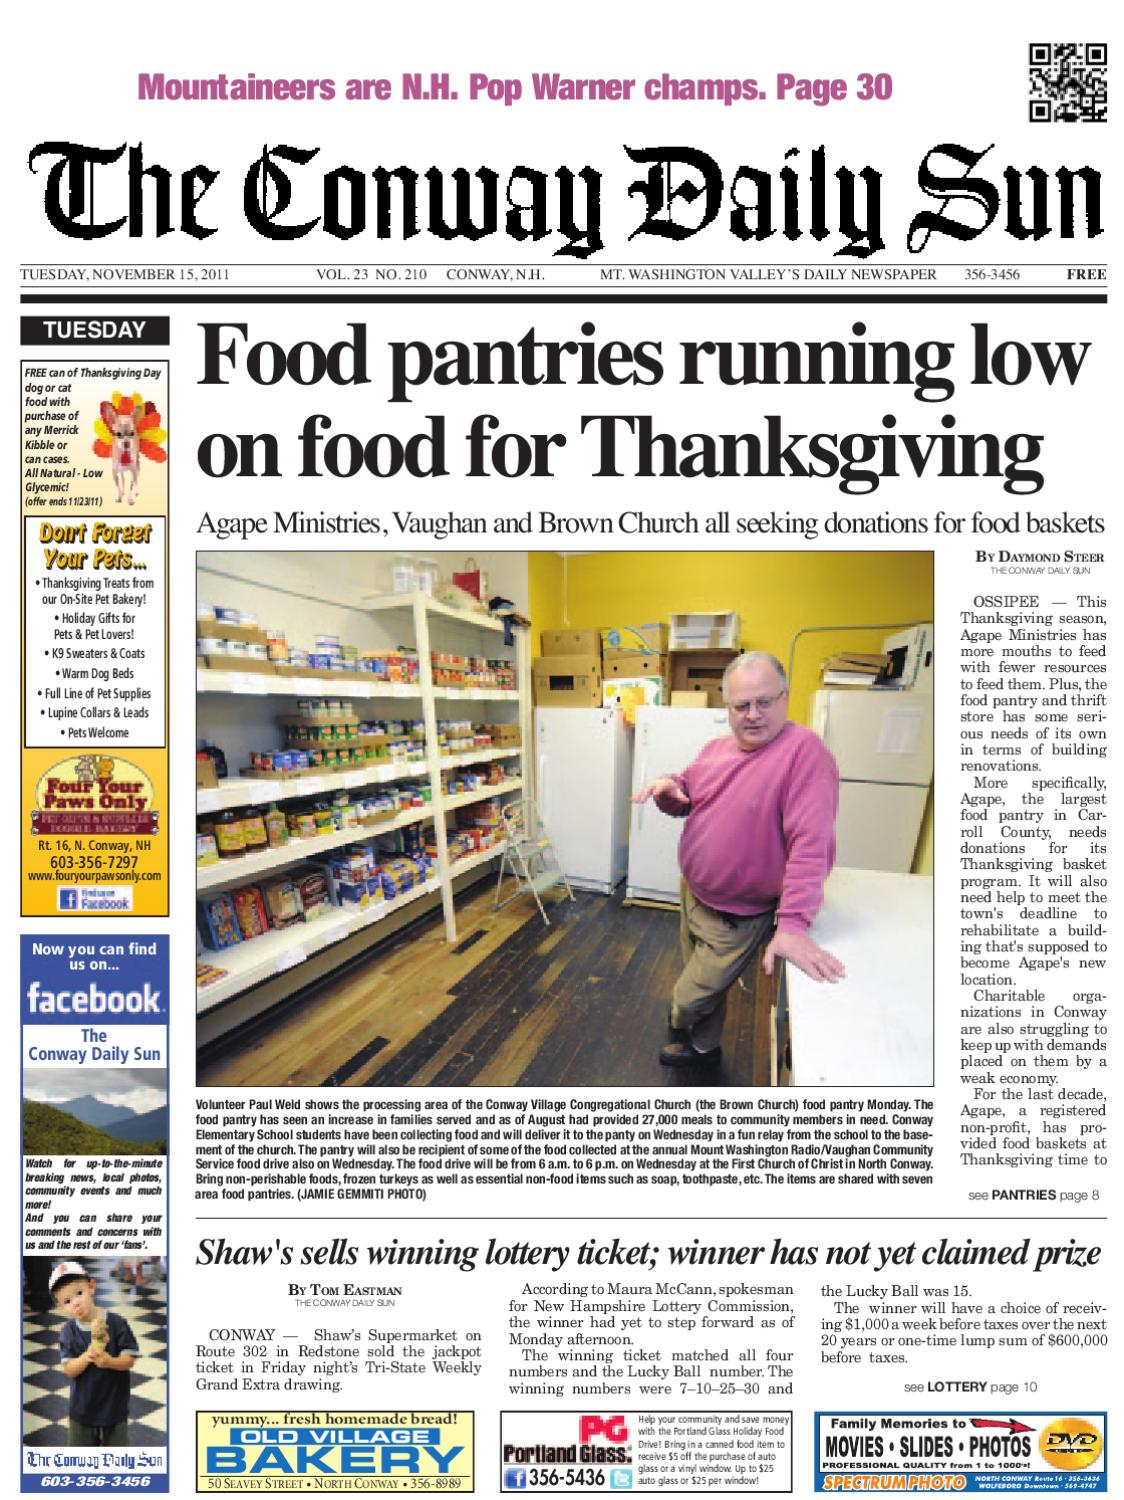 The Conway Daily Sun, Tuesday, November 15, 2011 by Daily